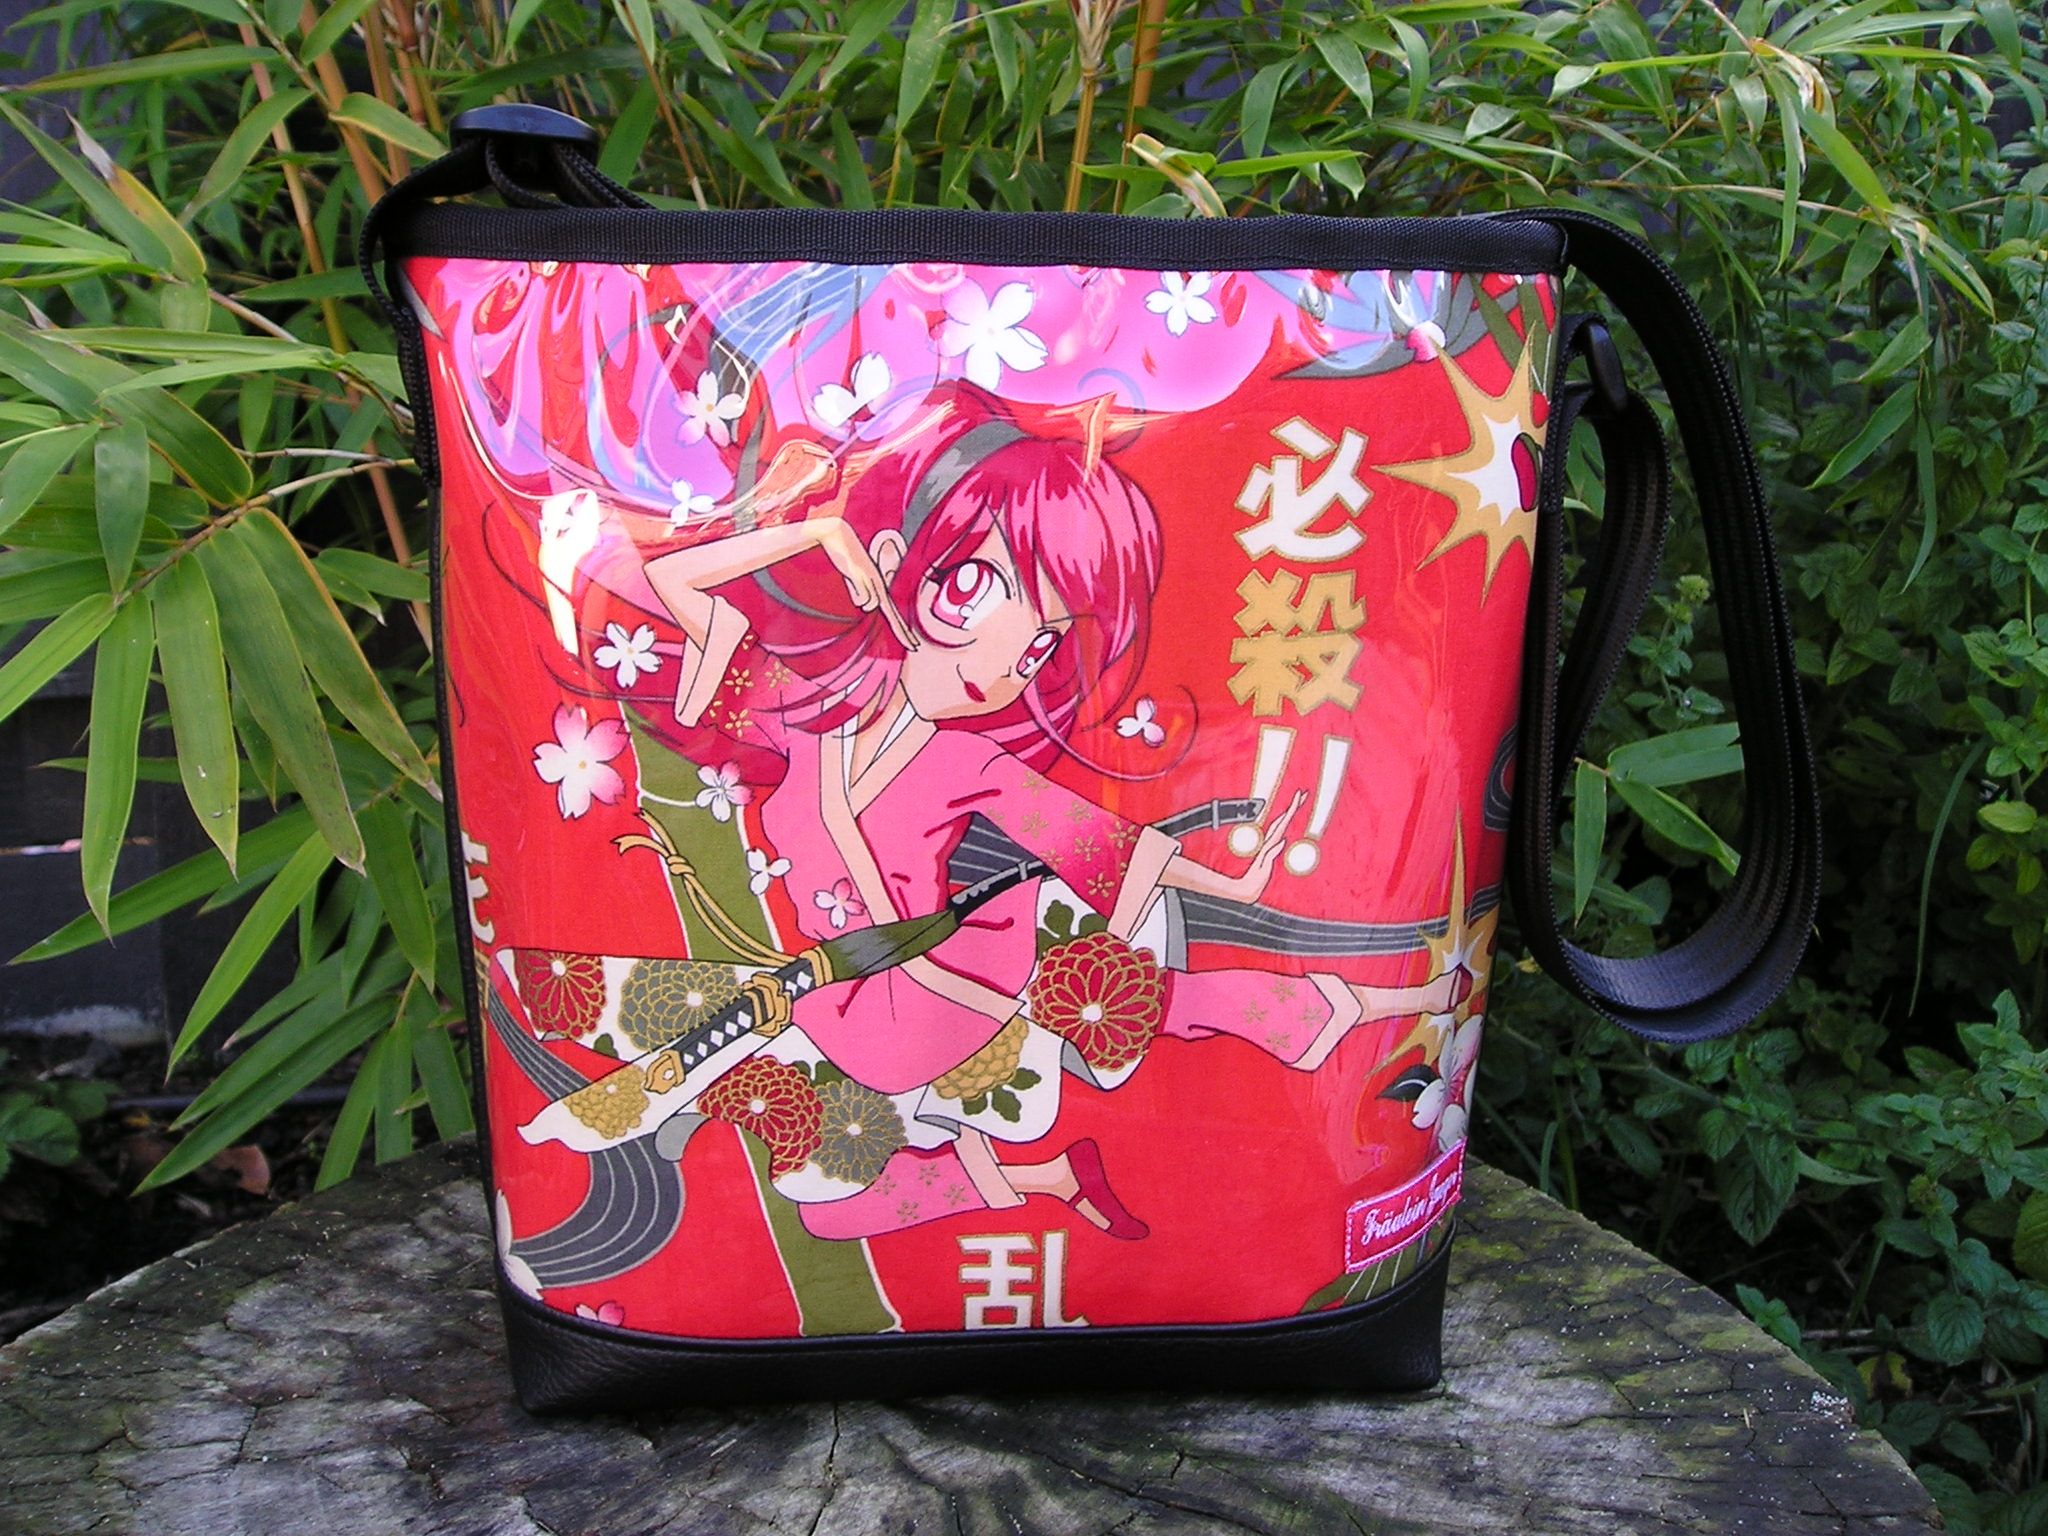 Anime karate girl tote email